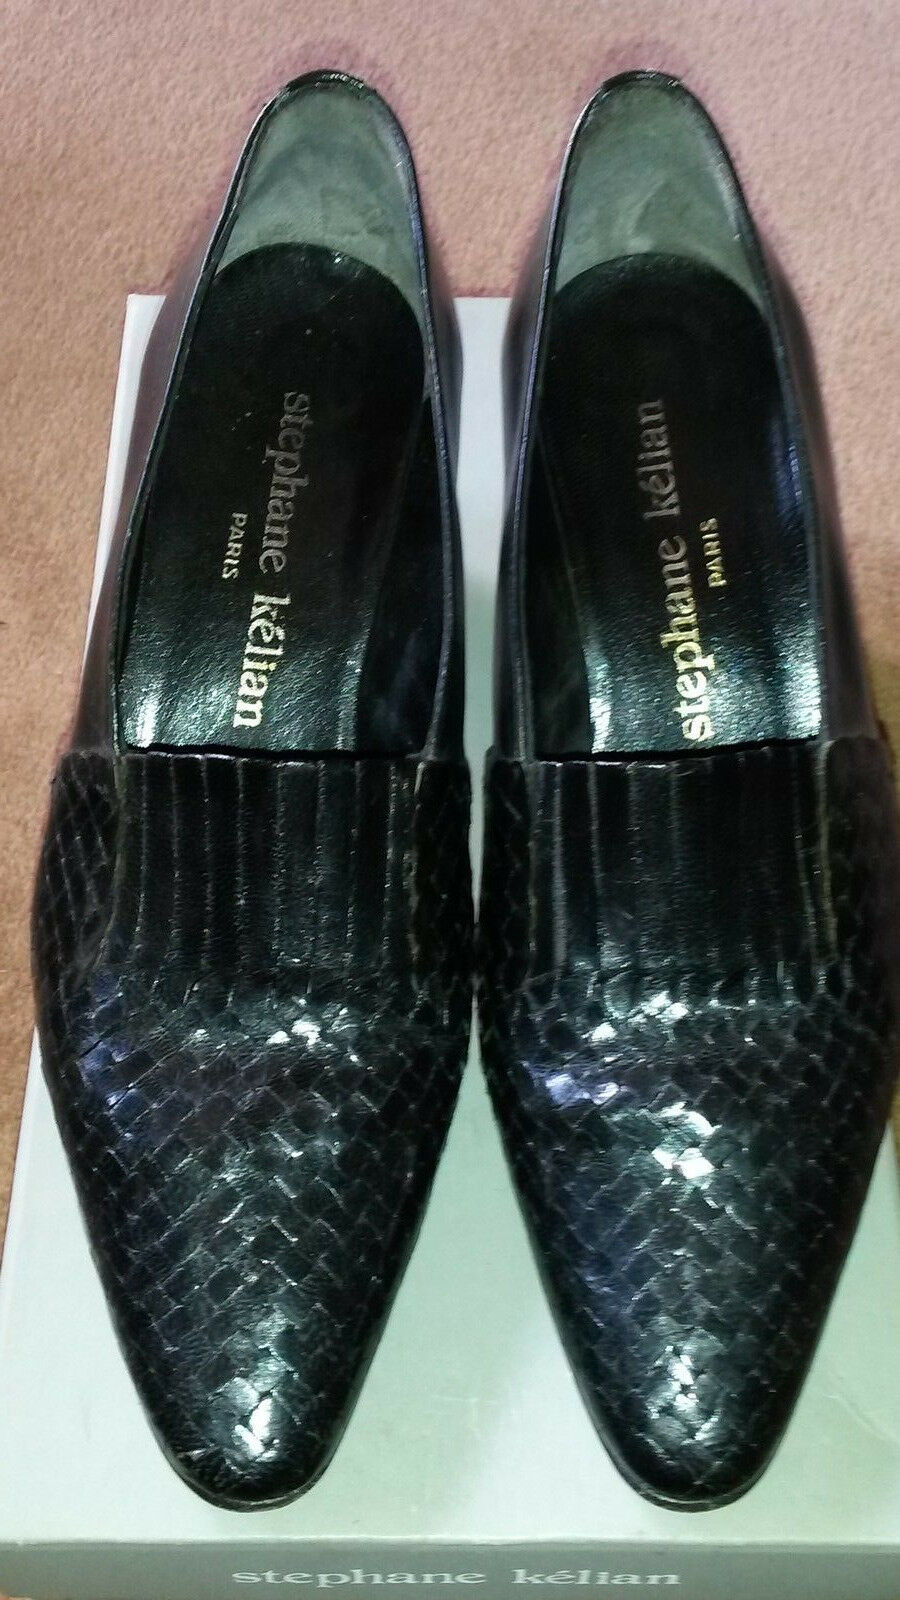 STEPHANE KE`LIAN Pumps, schwarz ,Gr. 4 1 2 - Original